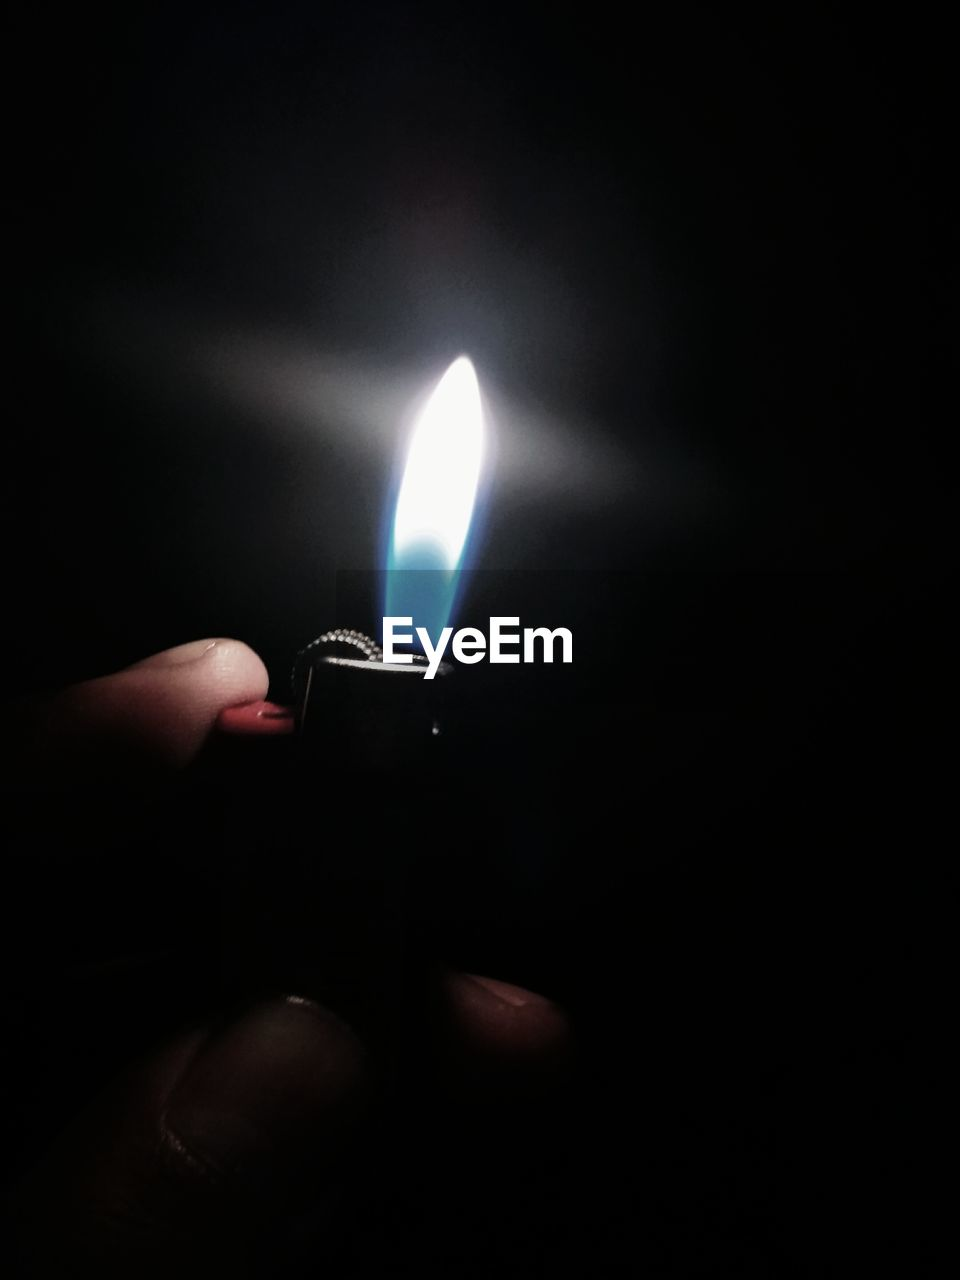 fire - natural phenomenon, flame, burning, human hand, holding, human body part, human finger, heat - temperature, one person, cigarette lighter, real people, glowing, illuminated, close-up, night, unrecognizable person, black background, darkroom, studio shot, indoors, people